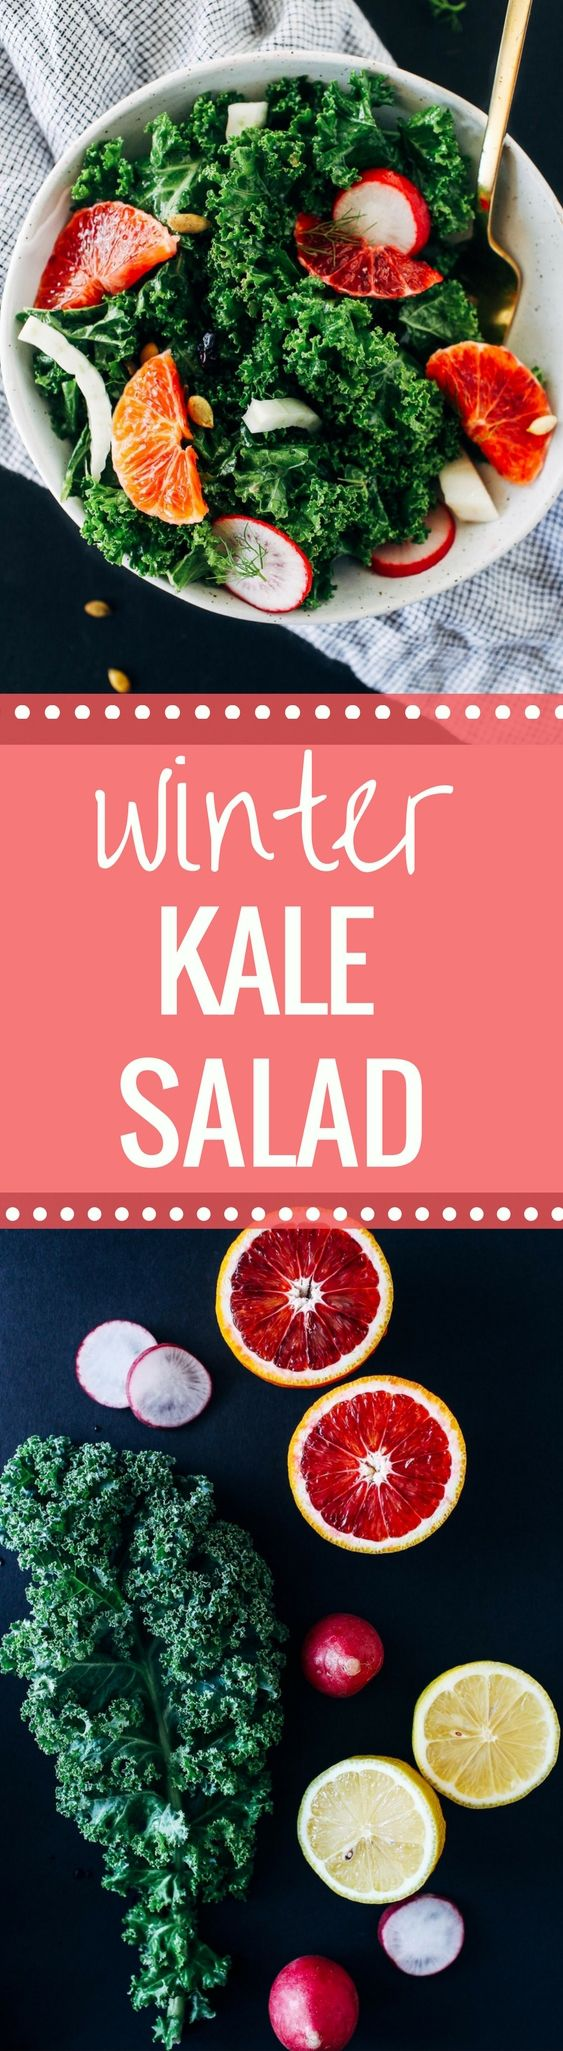 Winter Kale Salad with Lemon Dijon Dressing– packed full of fiber and vitamin C to help keep your immune system strong. The kale doesn't get soggy, making it perfect to prep for healthy lunches during the week! (vegan, gluten-free, grain-free and nut-free)